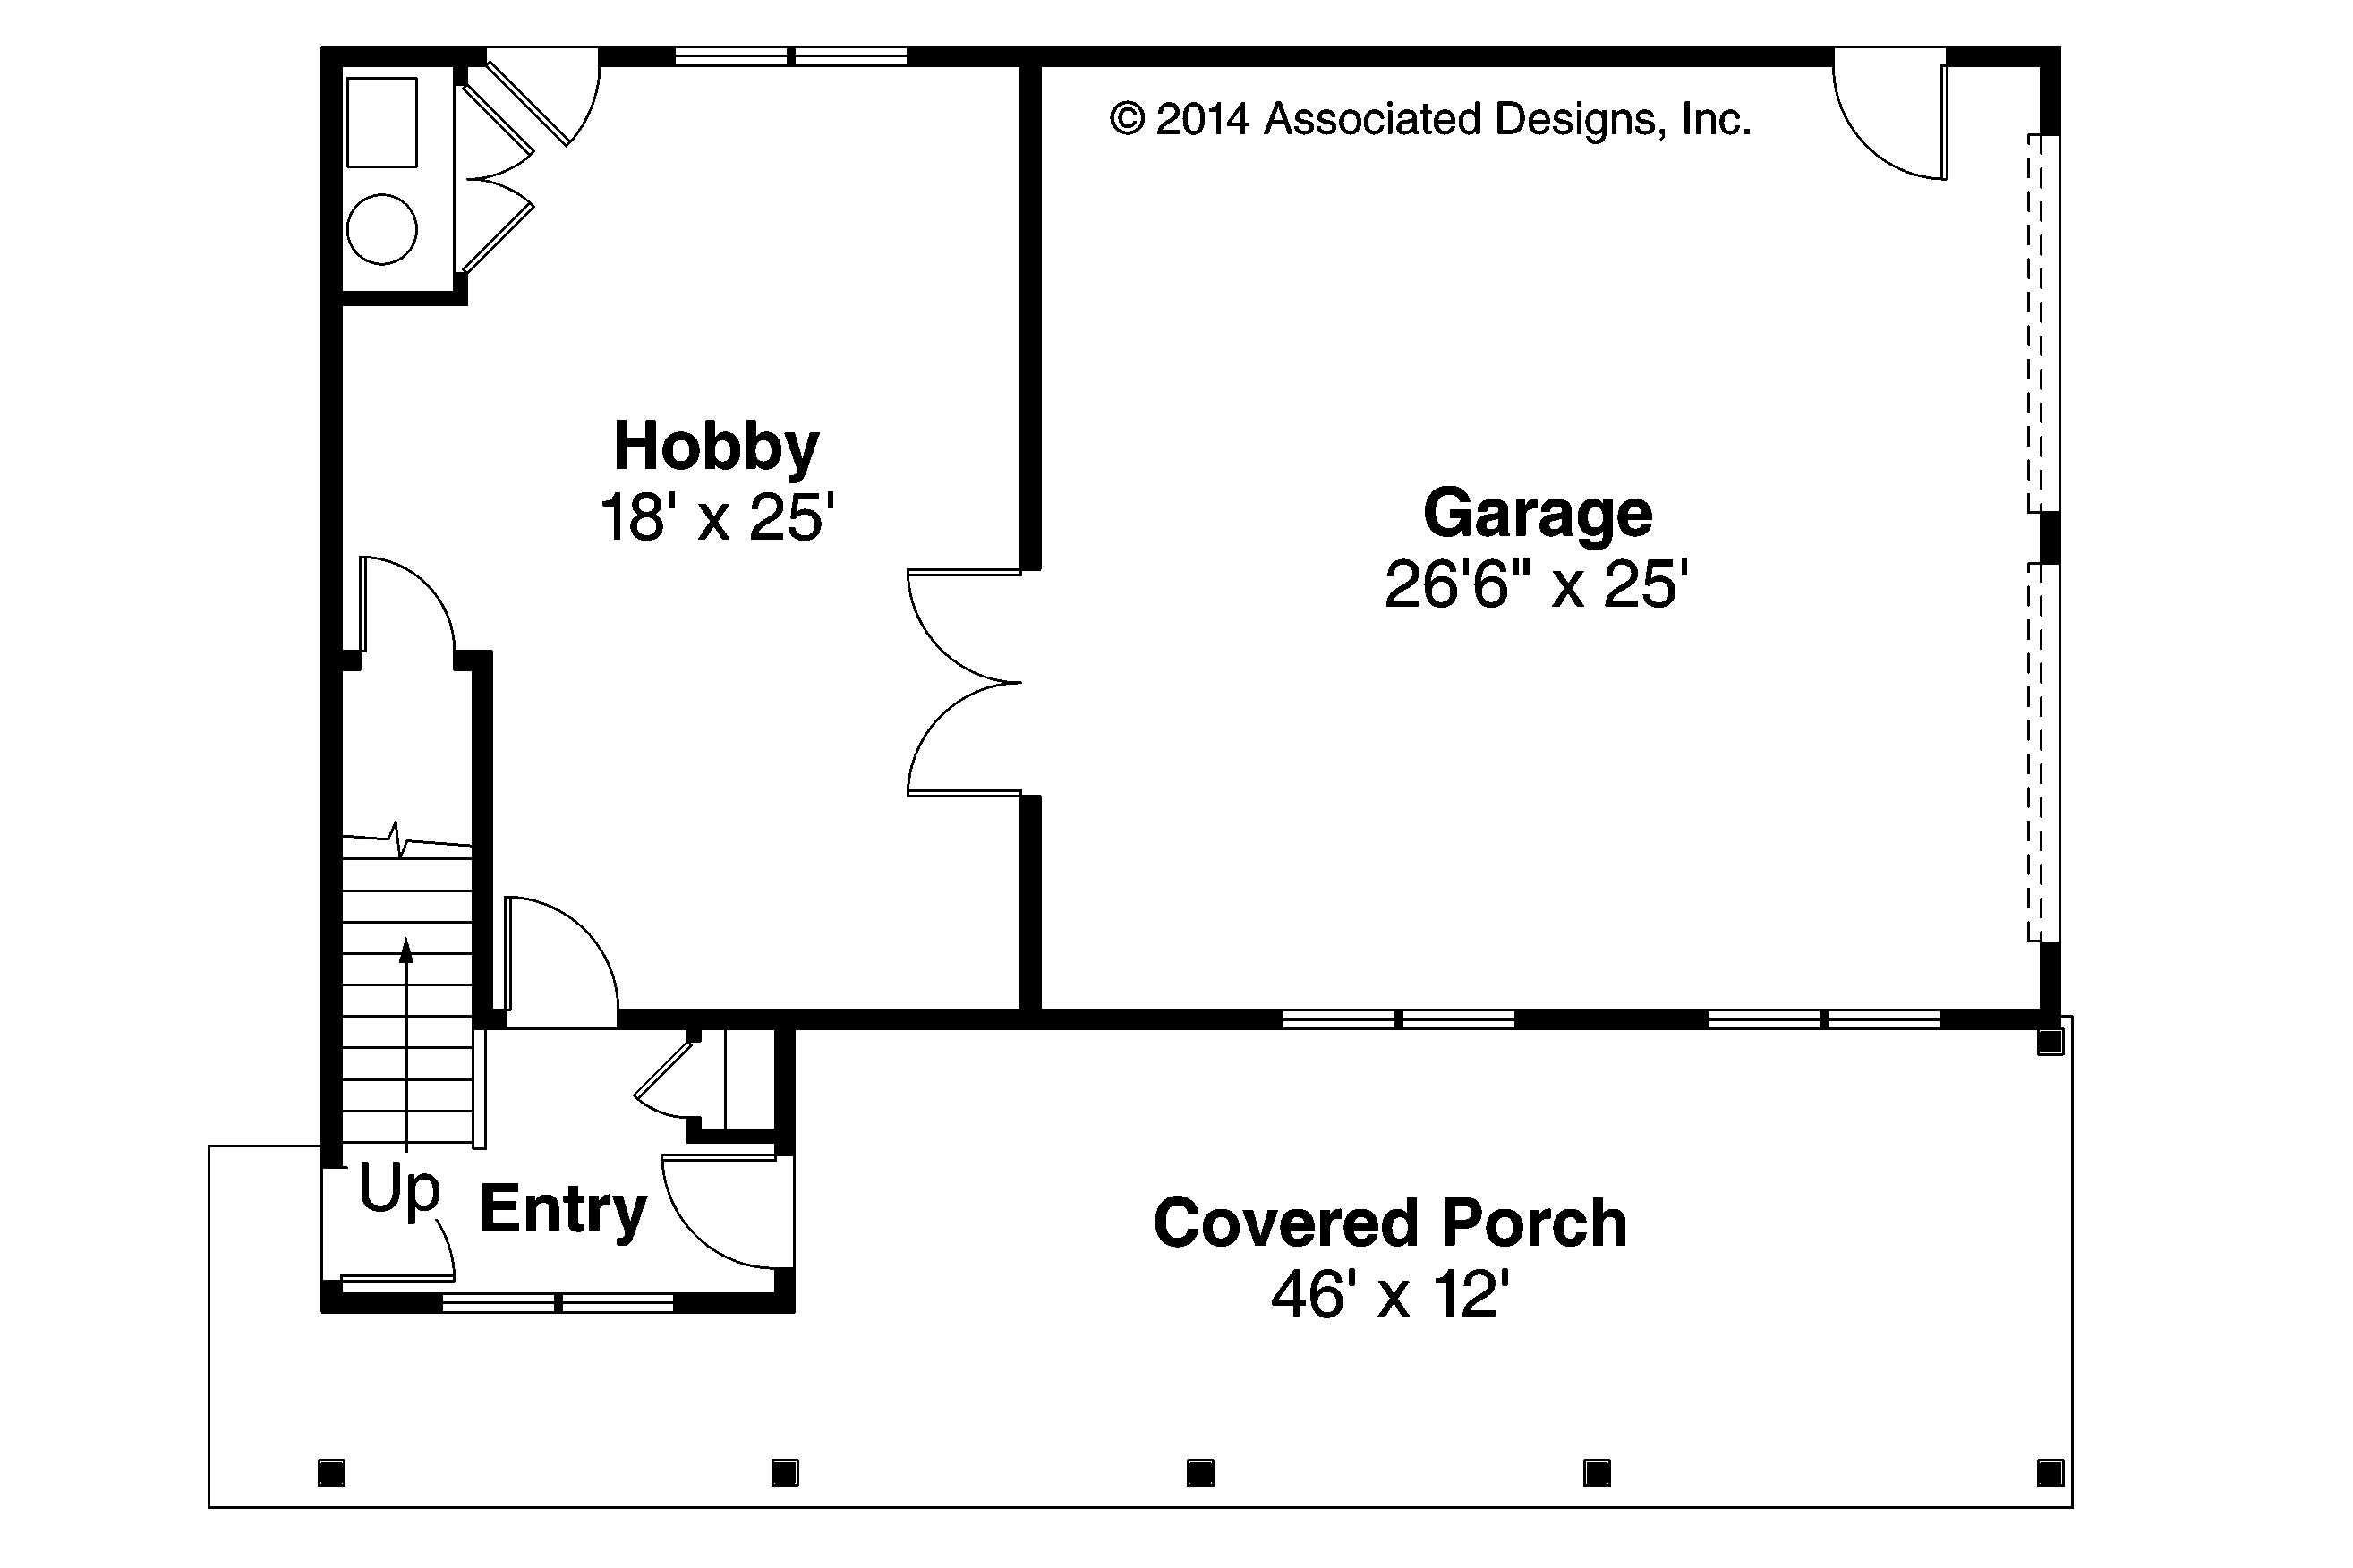 Craftsman house plans garage w apartment 20 119 Garage floor plans free